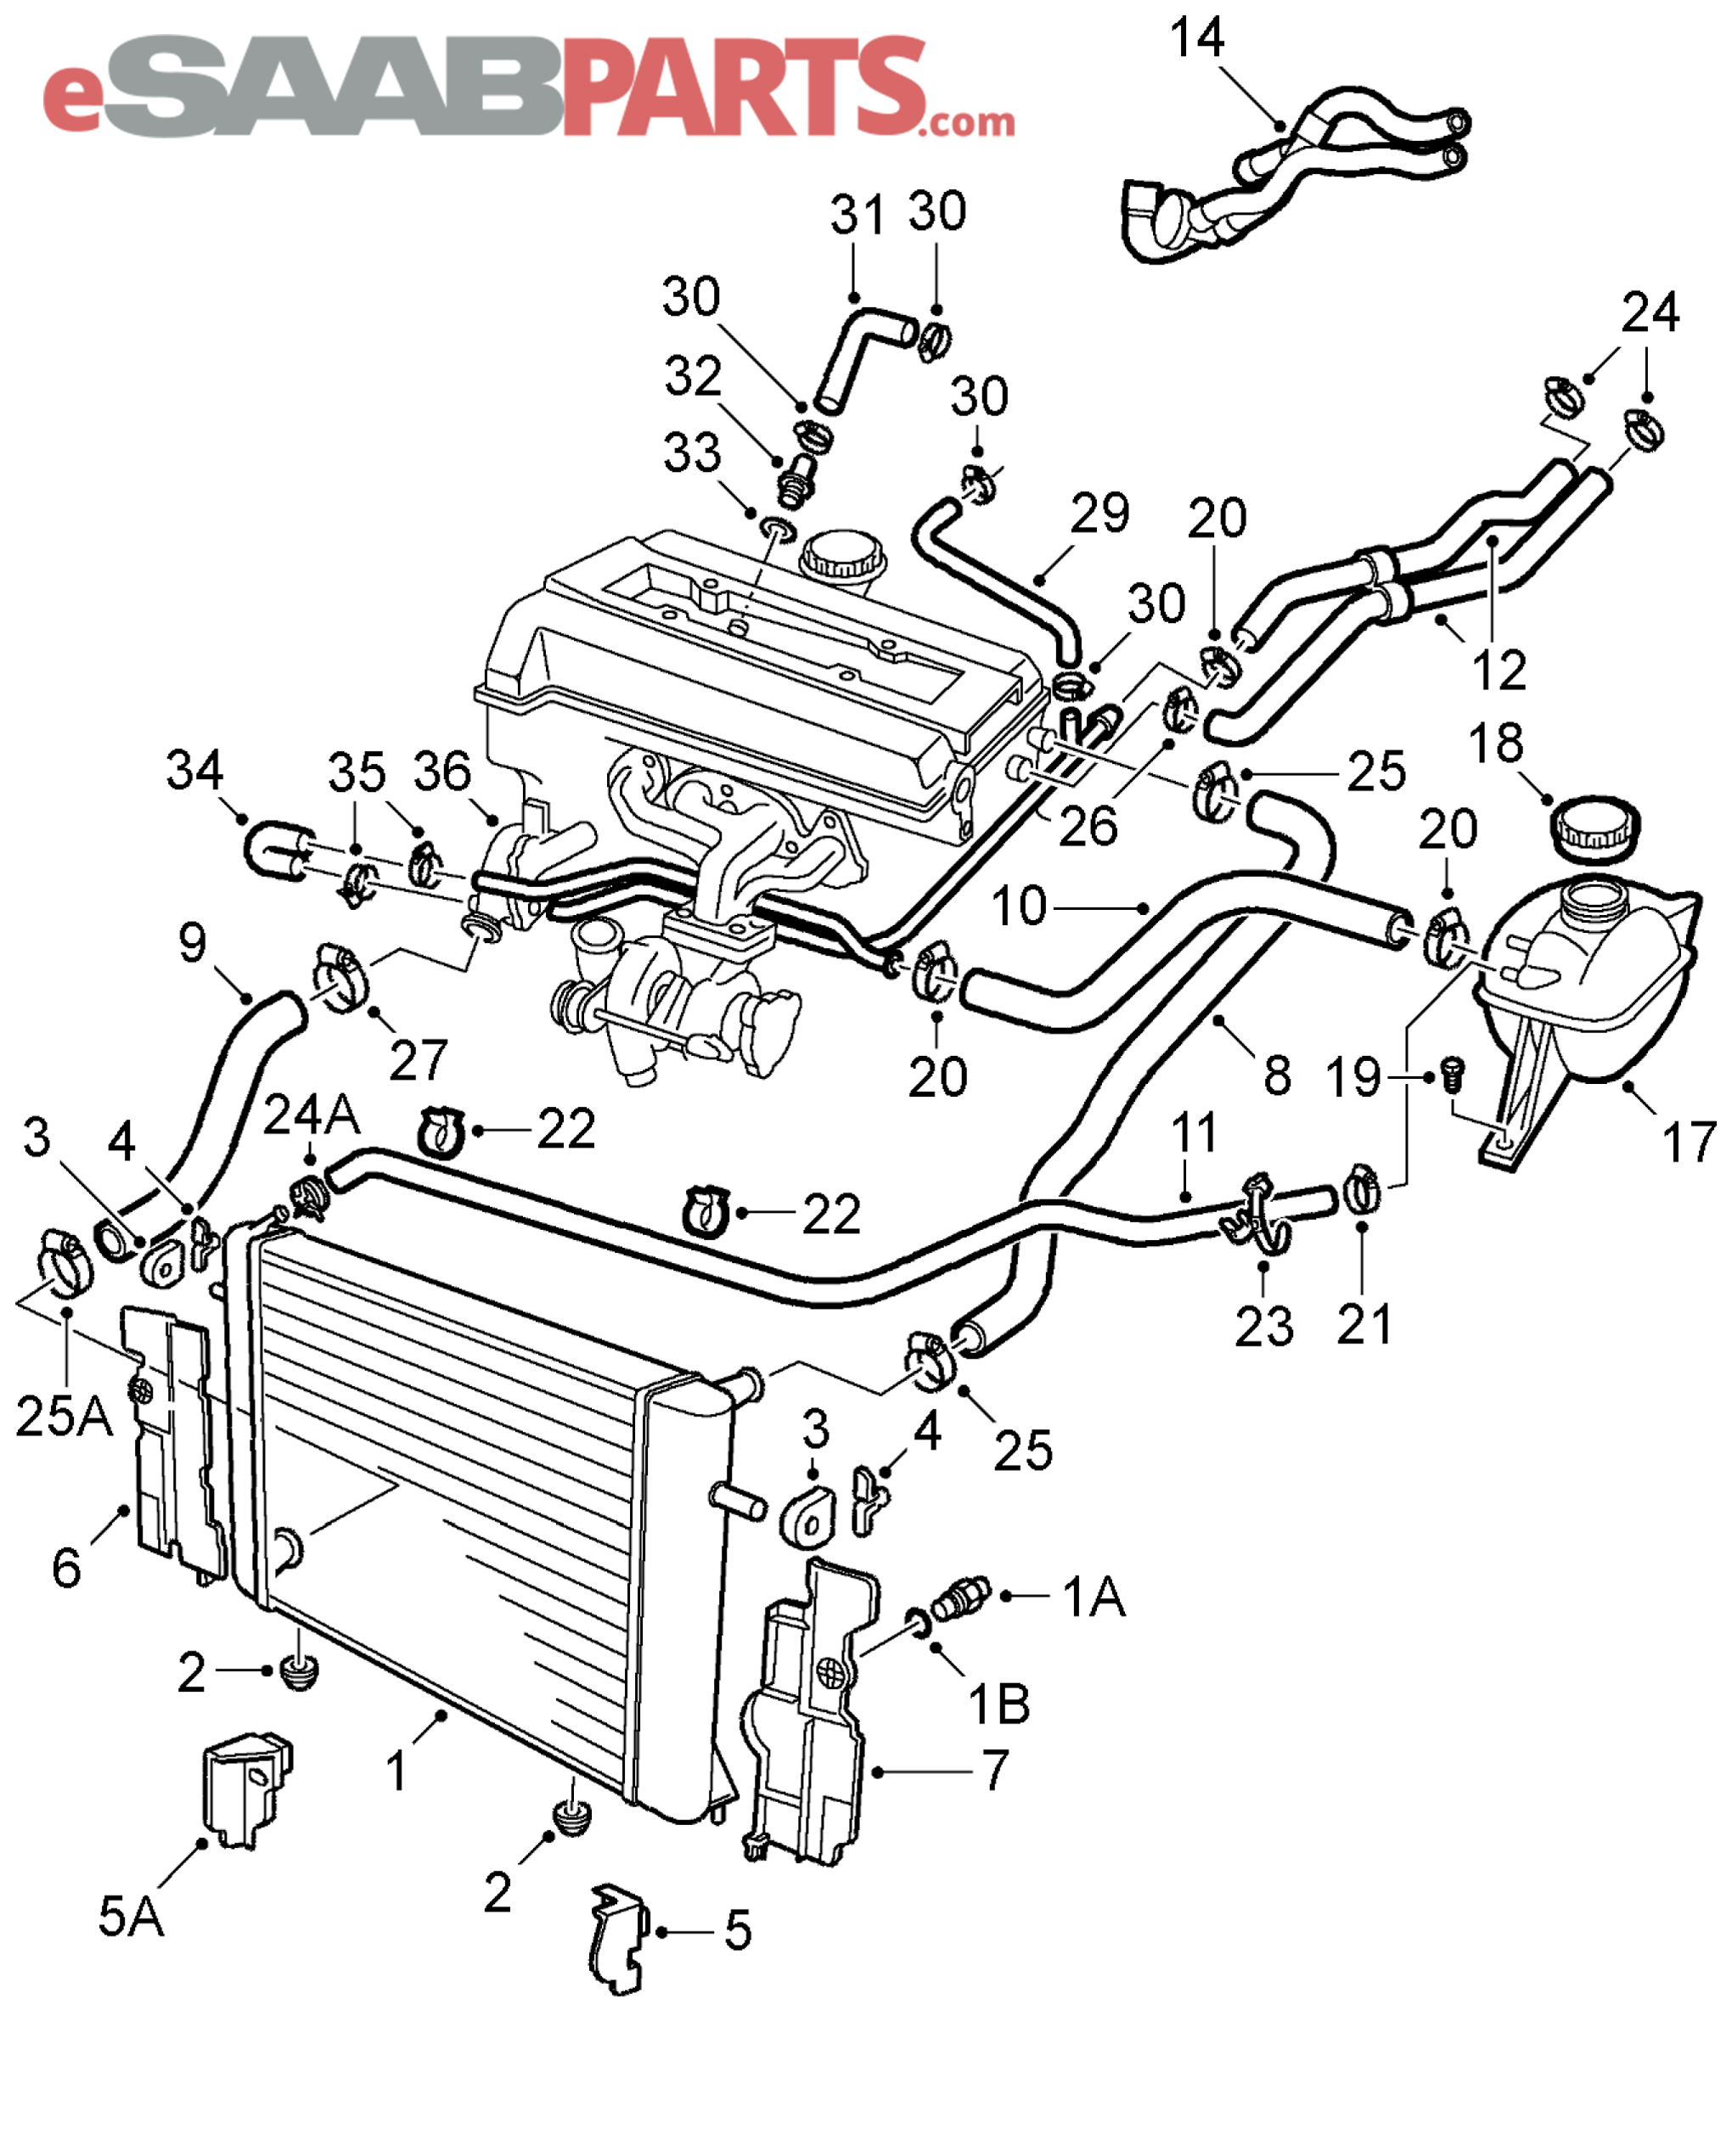 Saab As2 Wiring Diagram